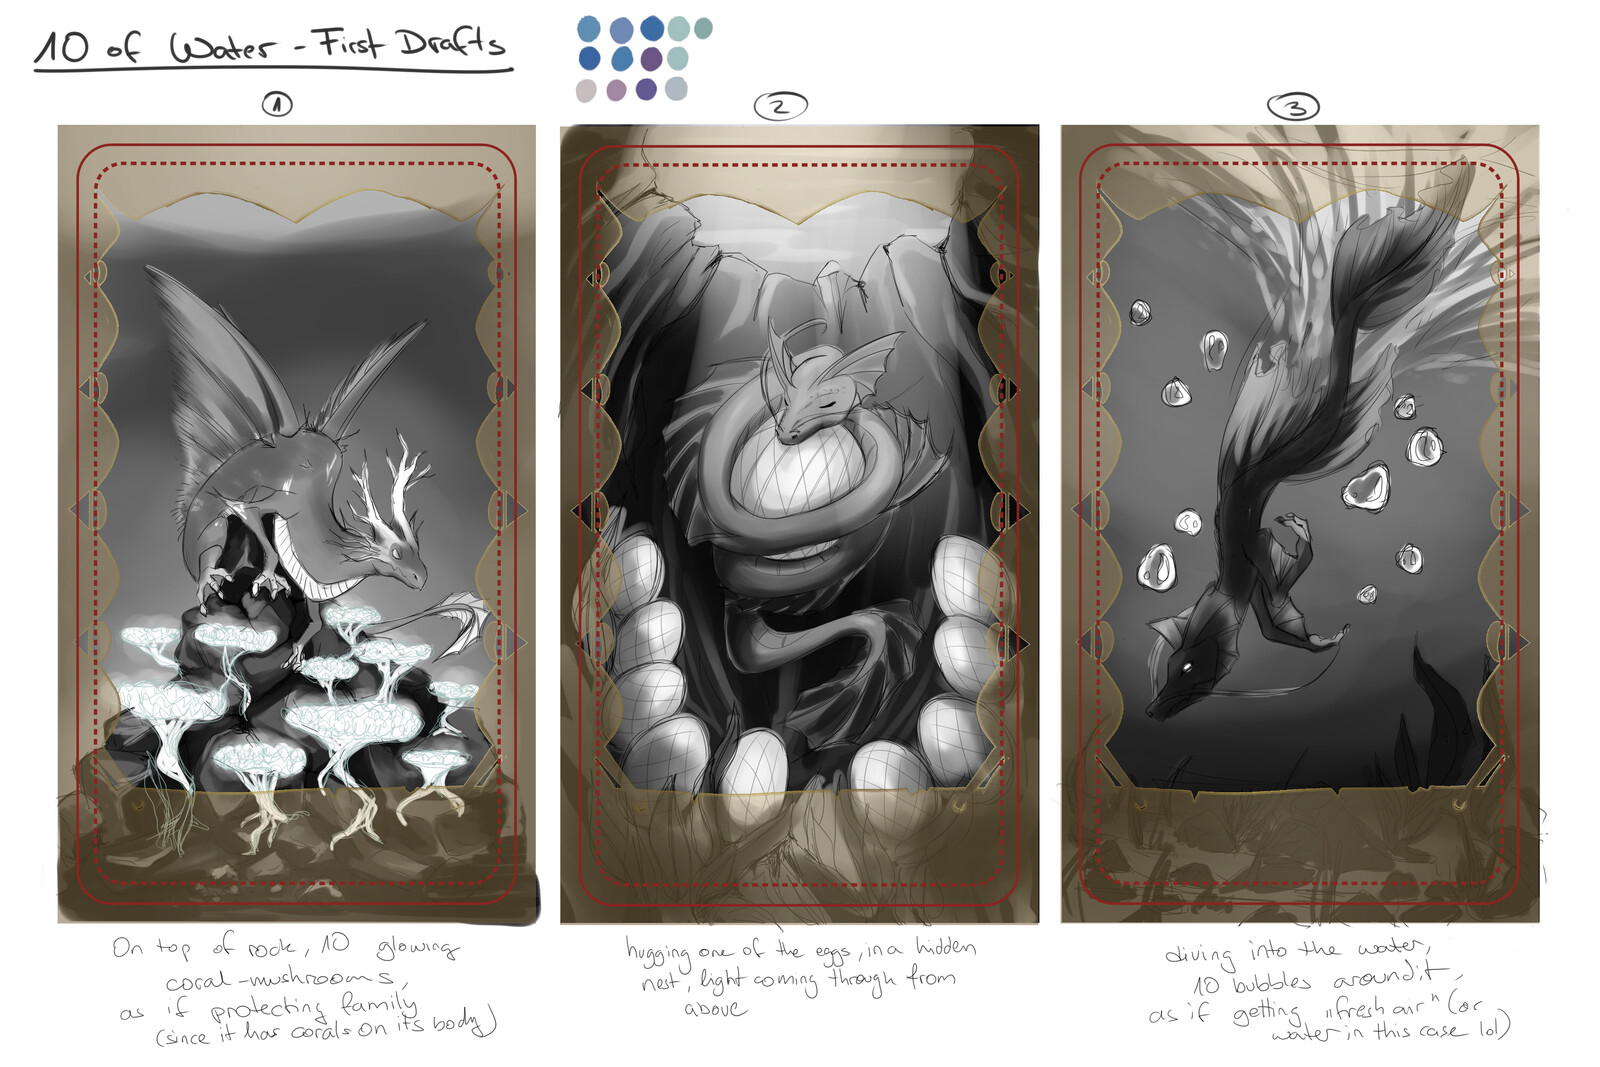 3 first thumbnails. The final piece was the pose from 1 with the eggs/babies from 2